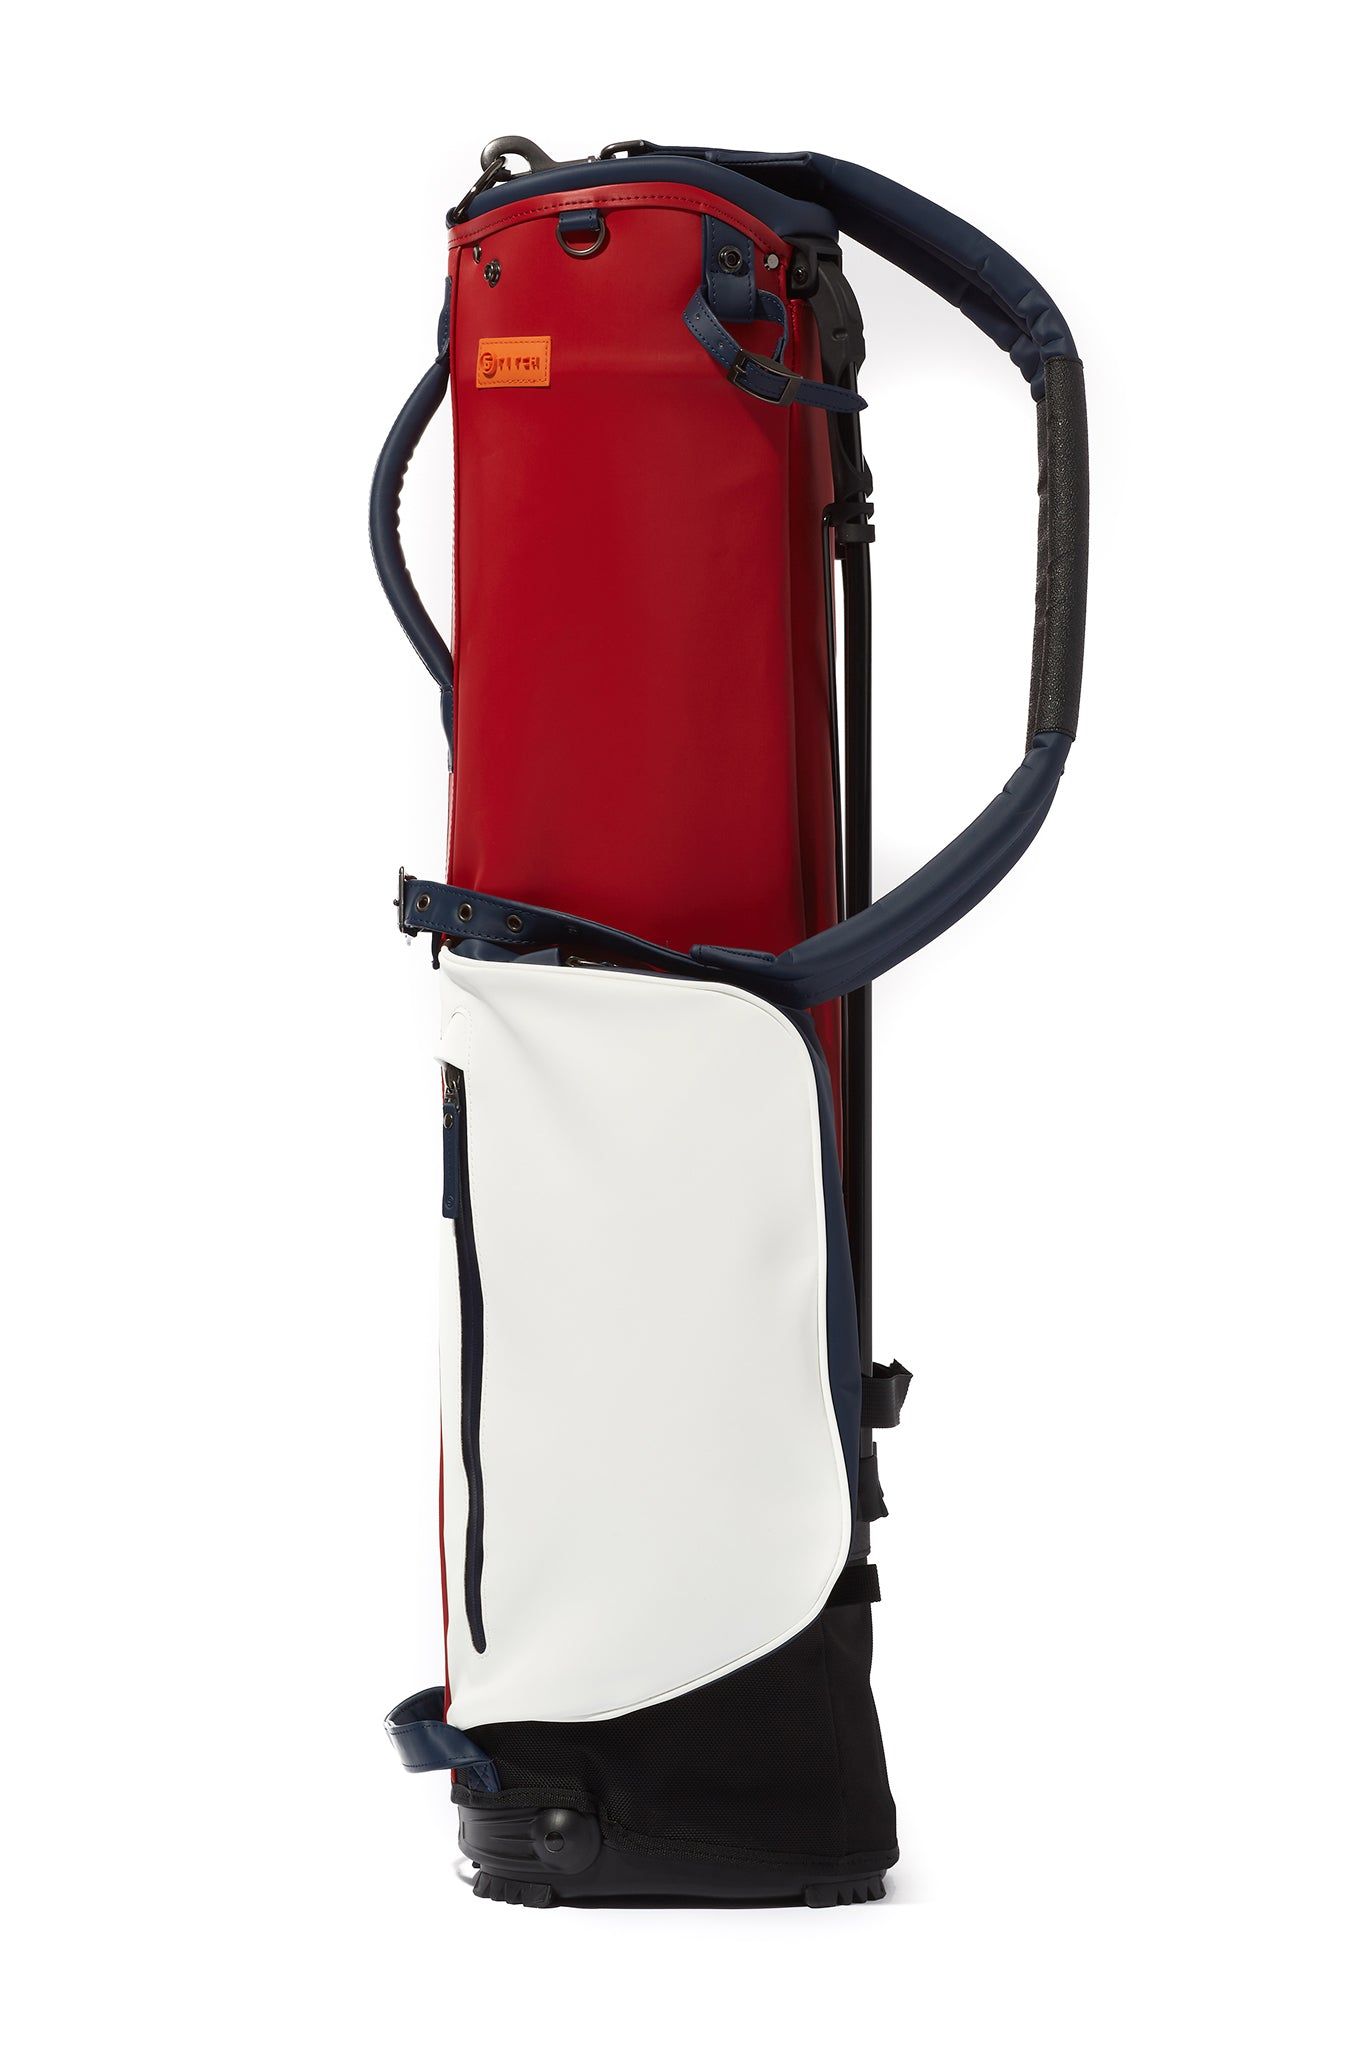 SL1 Golf Bag - 2019